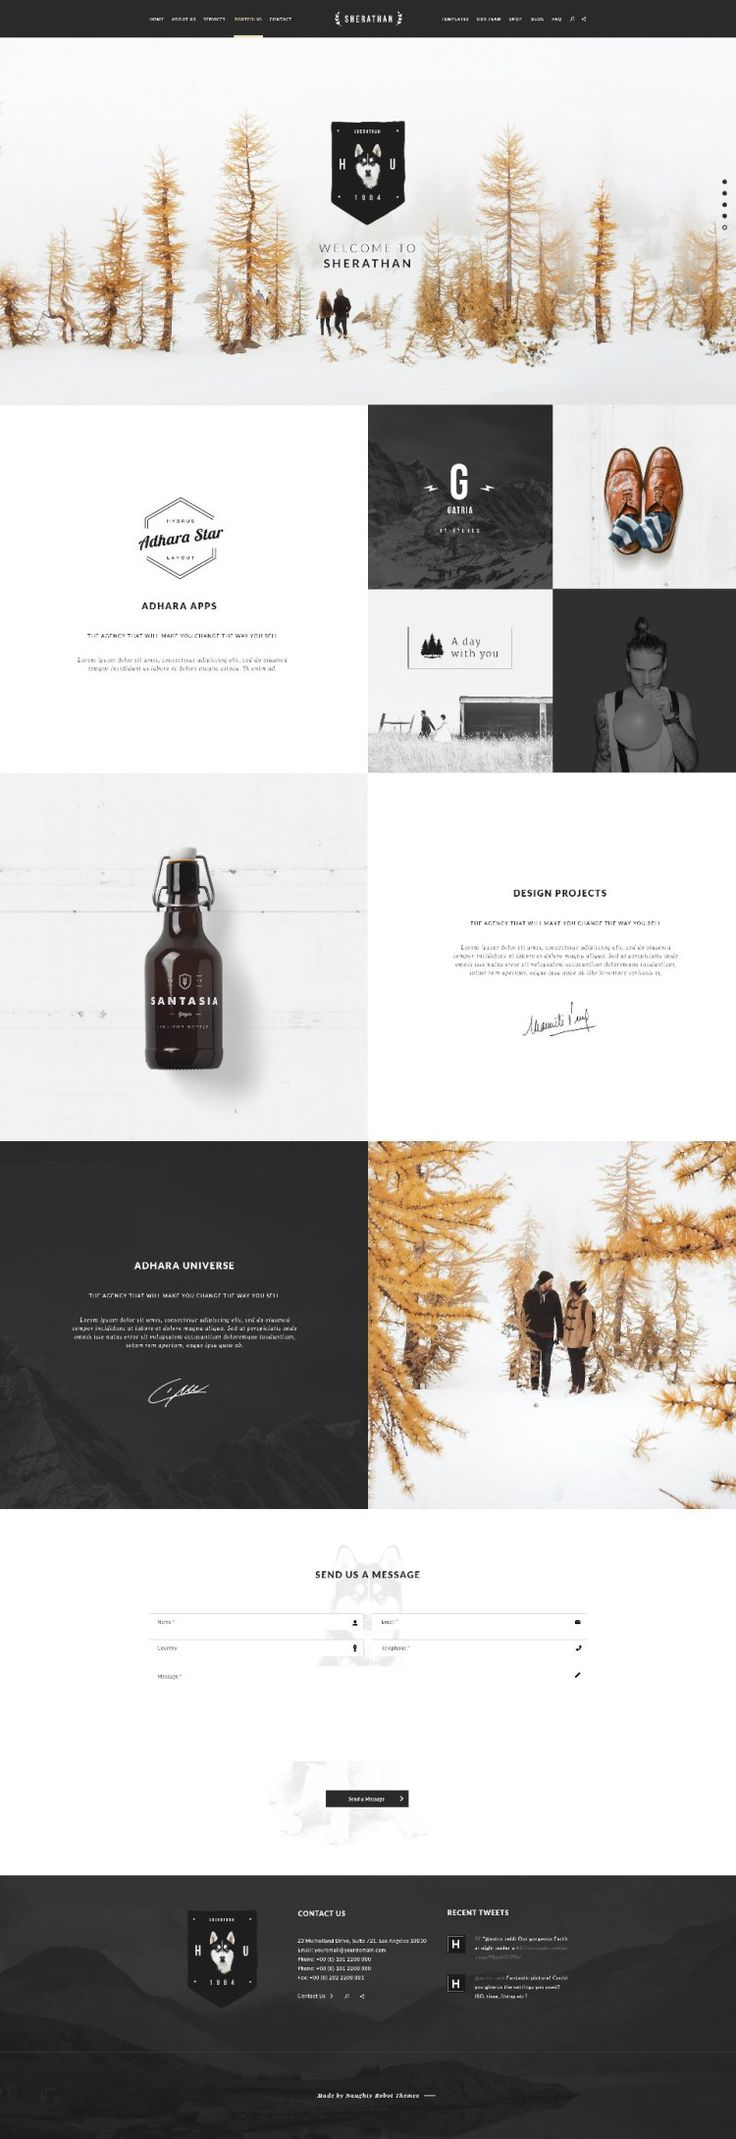 Hydrus Web Design Inspiration by naughtyrobot